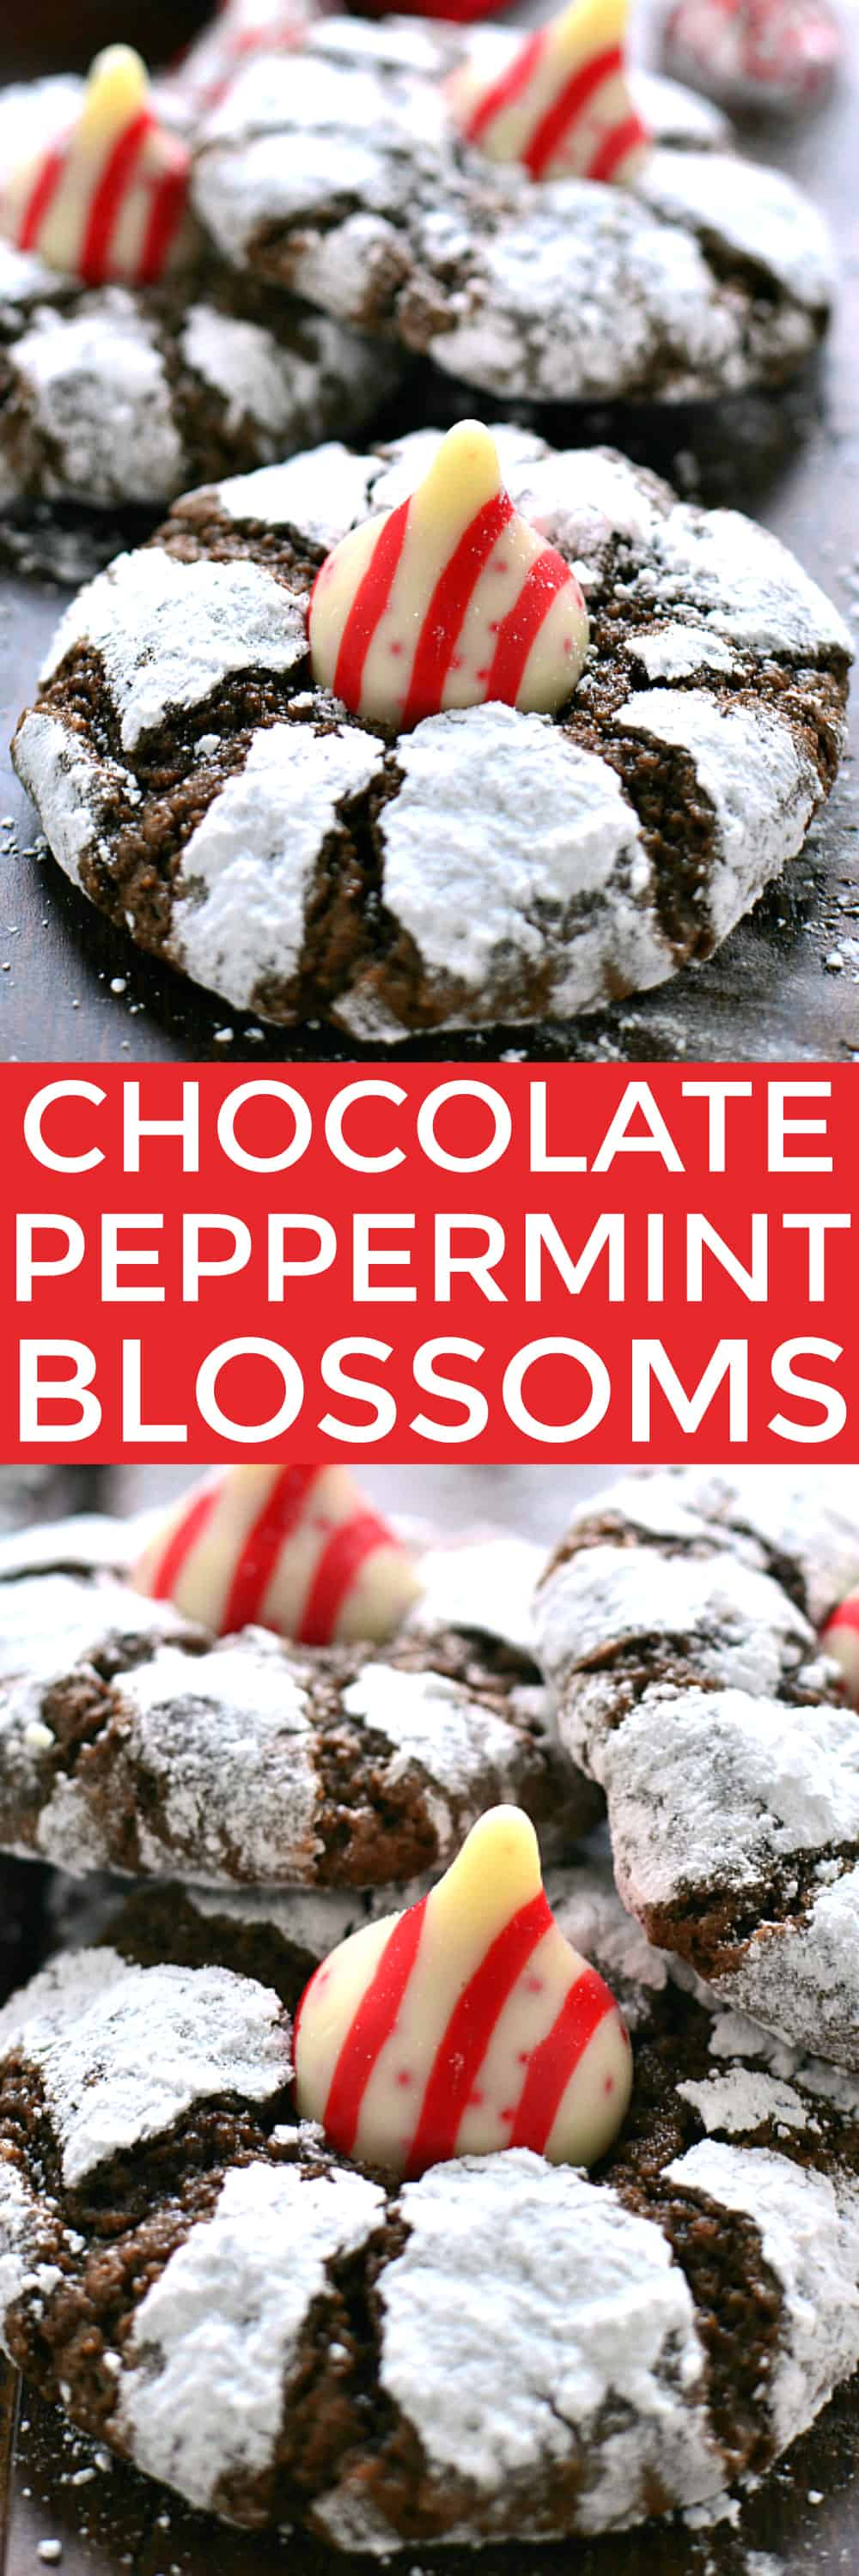 Chocolate Peppermint Blossom Cookies are loaded with rich chocolate and peppermint and topped with a Candy Cane-flavored Hershey's Kiss. The perfect holiday cookies for mint (and chocolate) lovers everywhere!